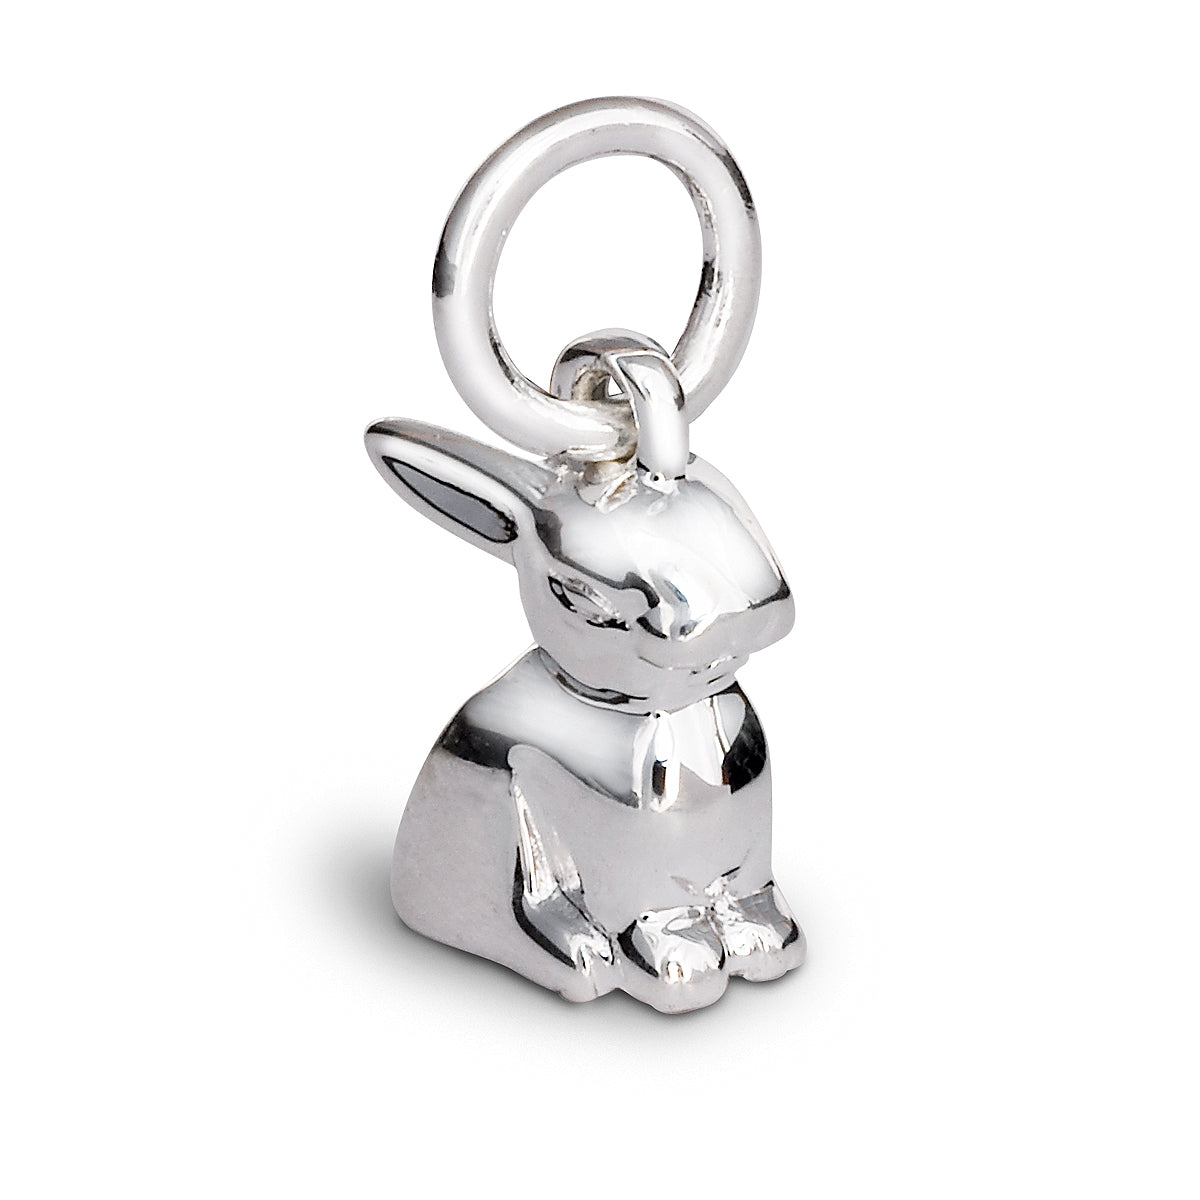 Sterling silver bunny rabbit charm fits all charm bracelets FREE UK DELIVERY